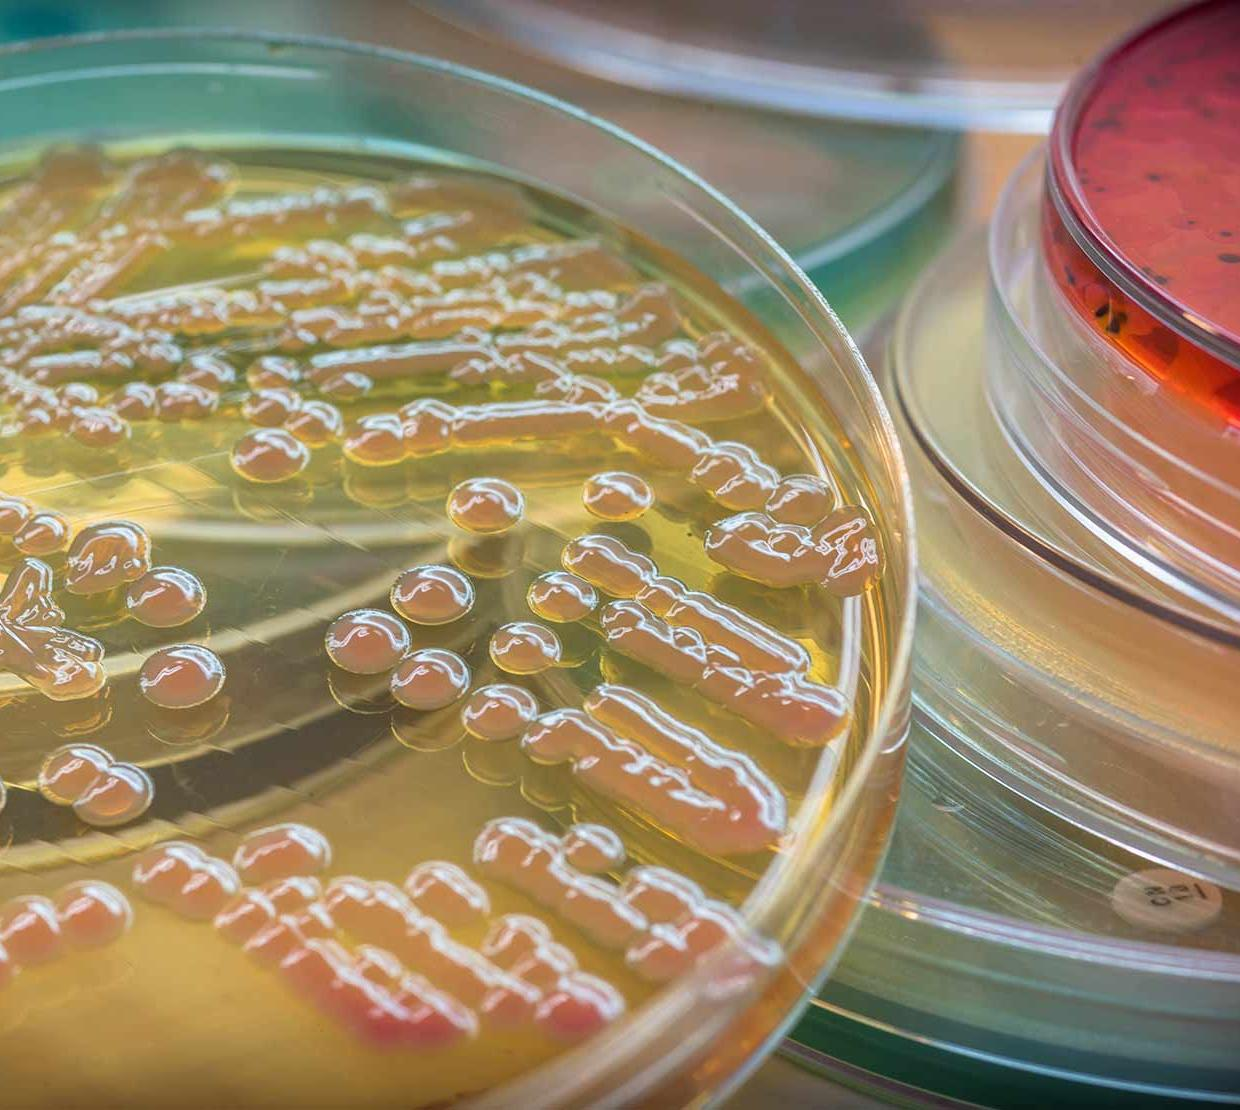 bacteria in pile of Petri dishes